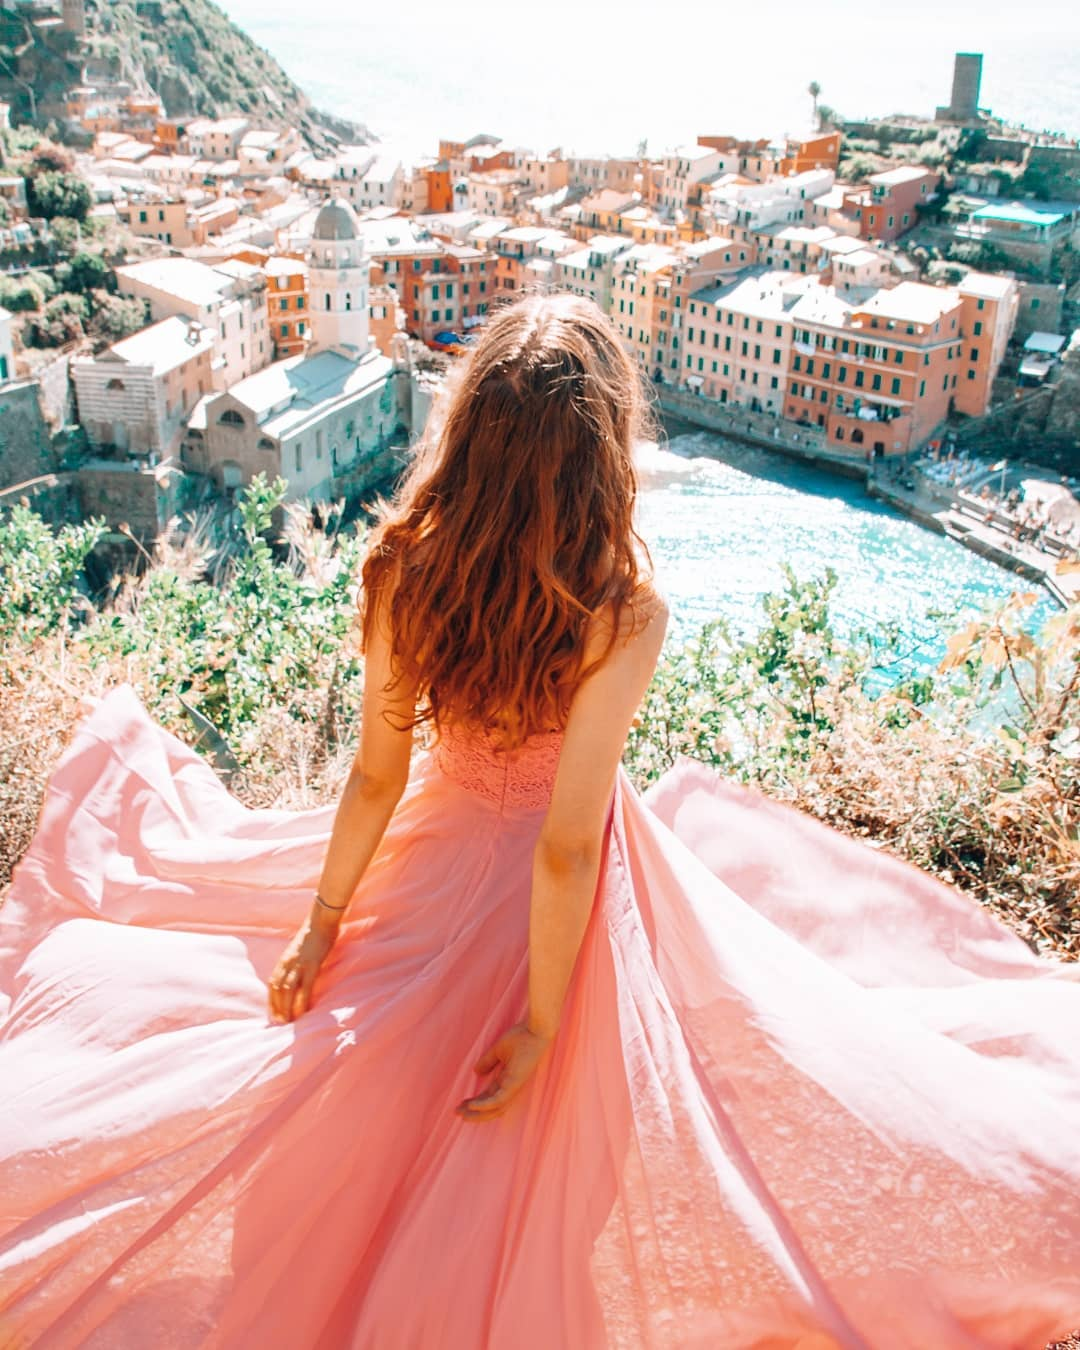 Girl with dress in Cinque Terre